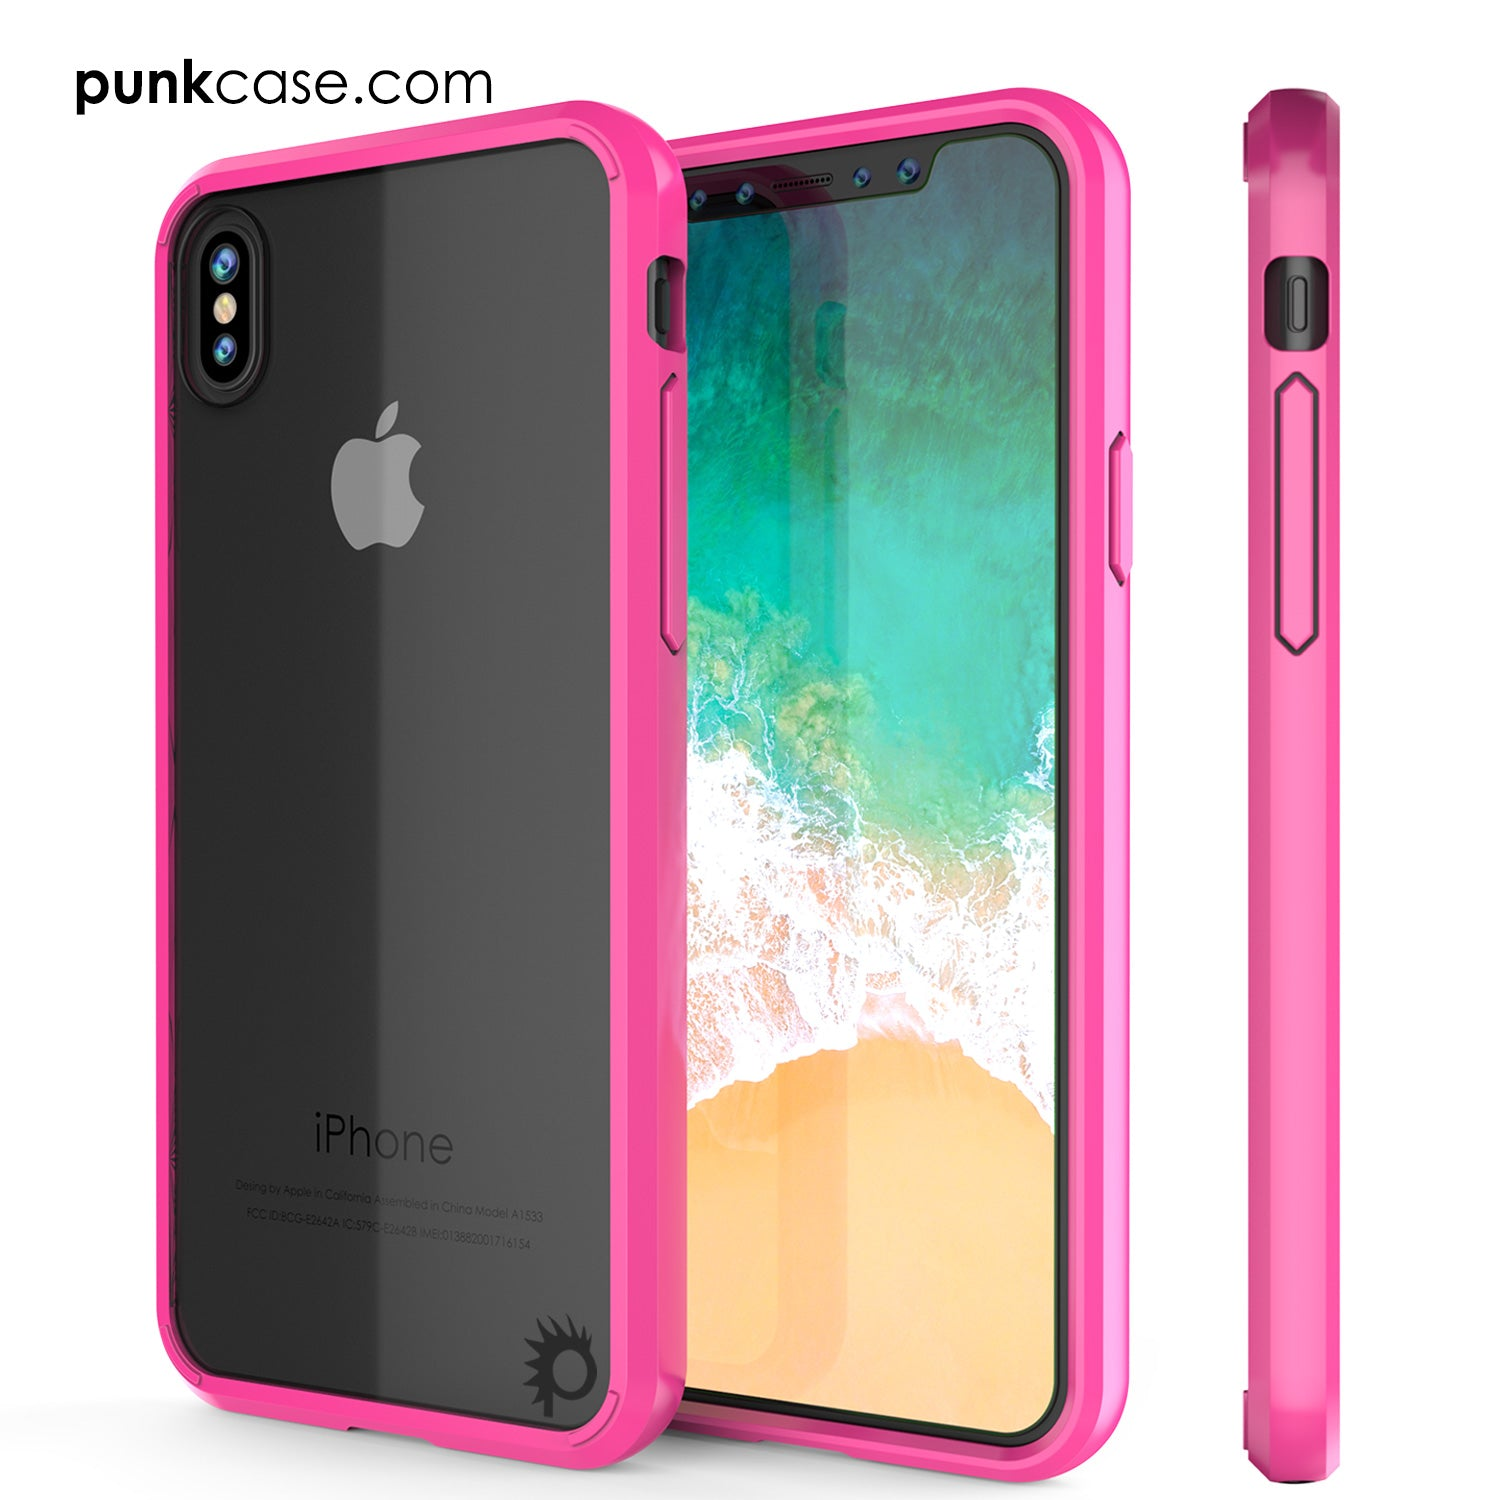 iPhone X Case, PUNKcase [LUCID 2.0 Series] [Slim Fit] Armor Cover W/Integrated Anti-Shock System [Pink]